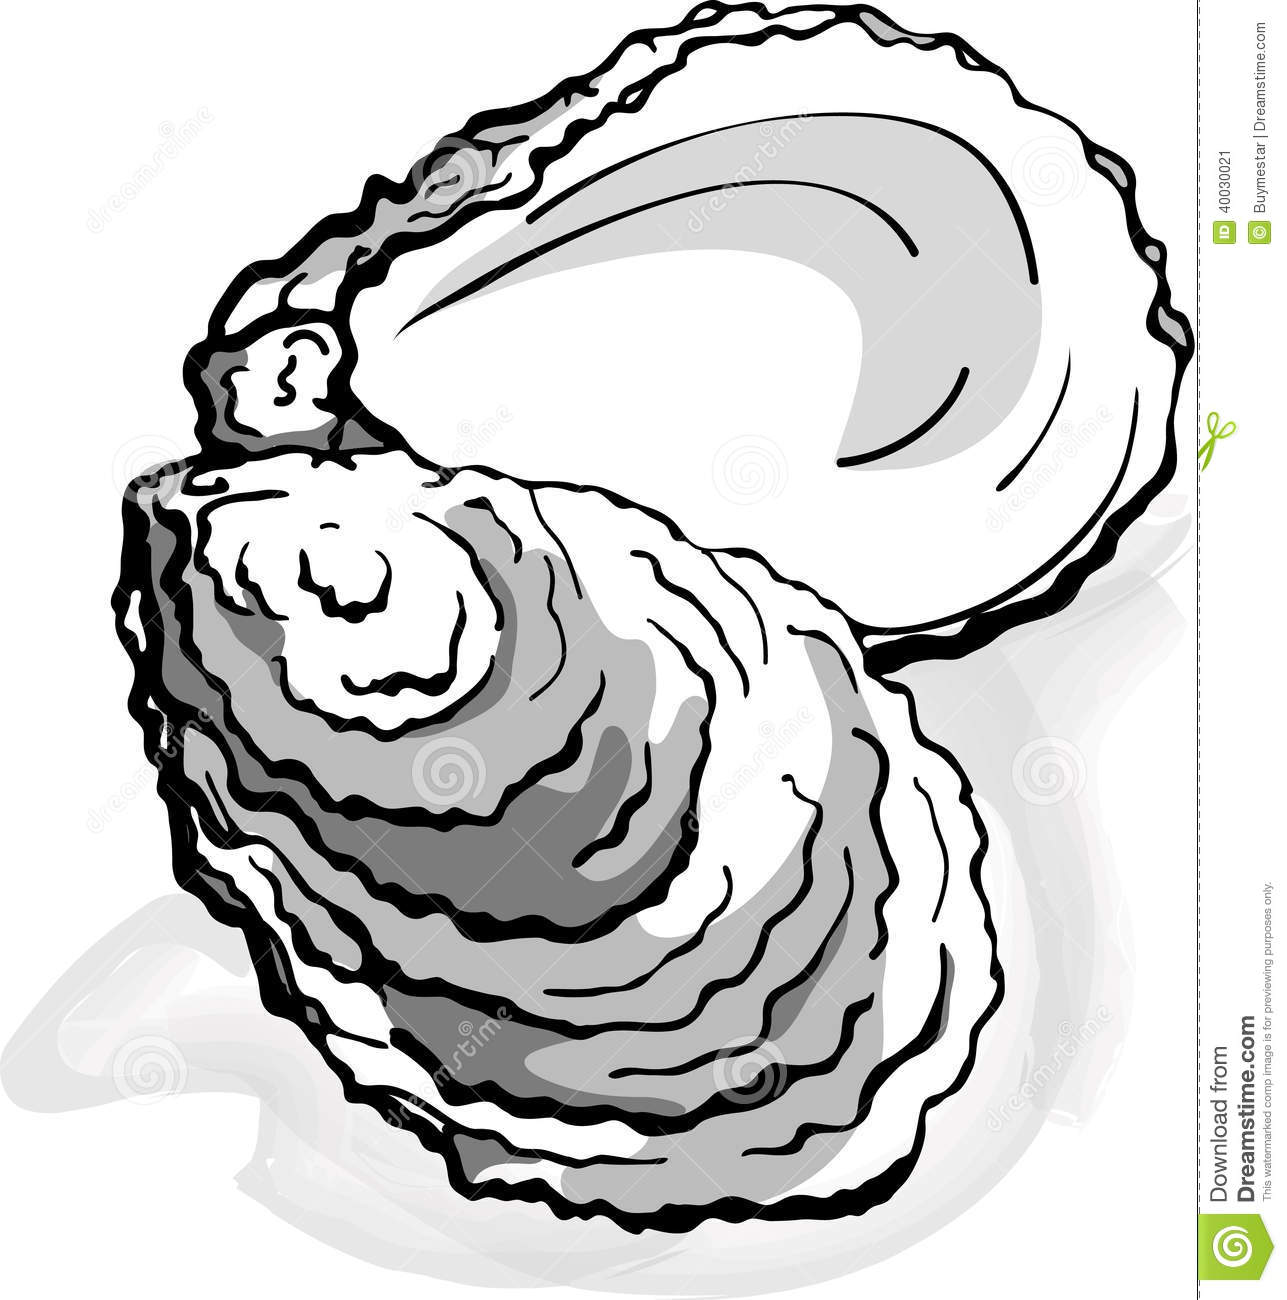 Oyster Stock Illustrations.